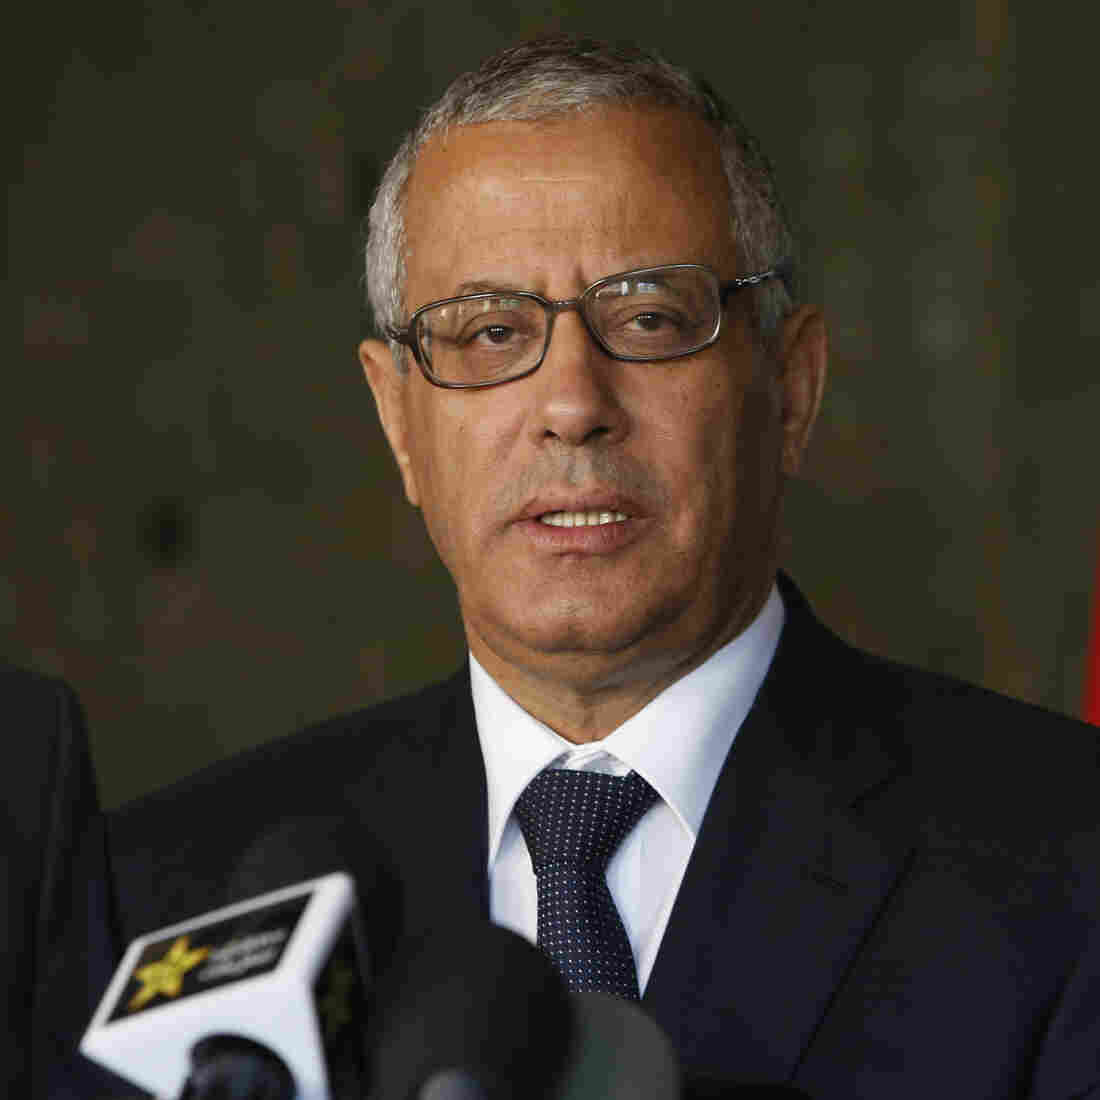 Libyan PM Freed After Being Held For Hours By Gunmen